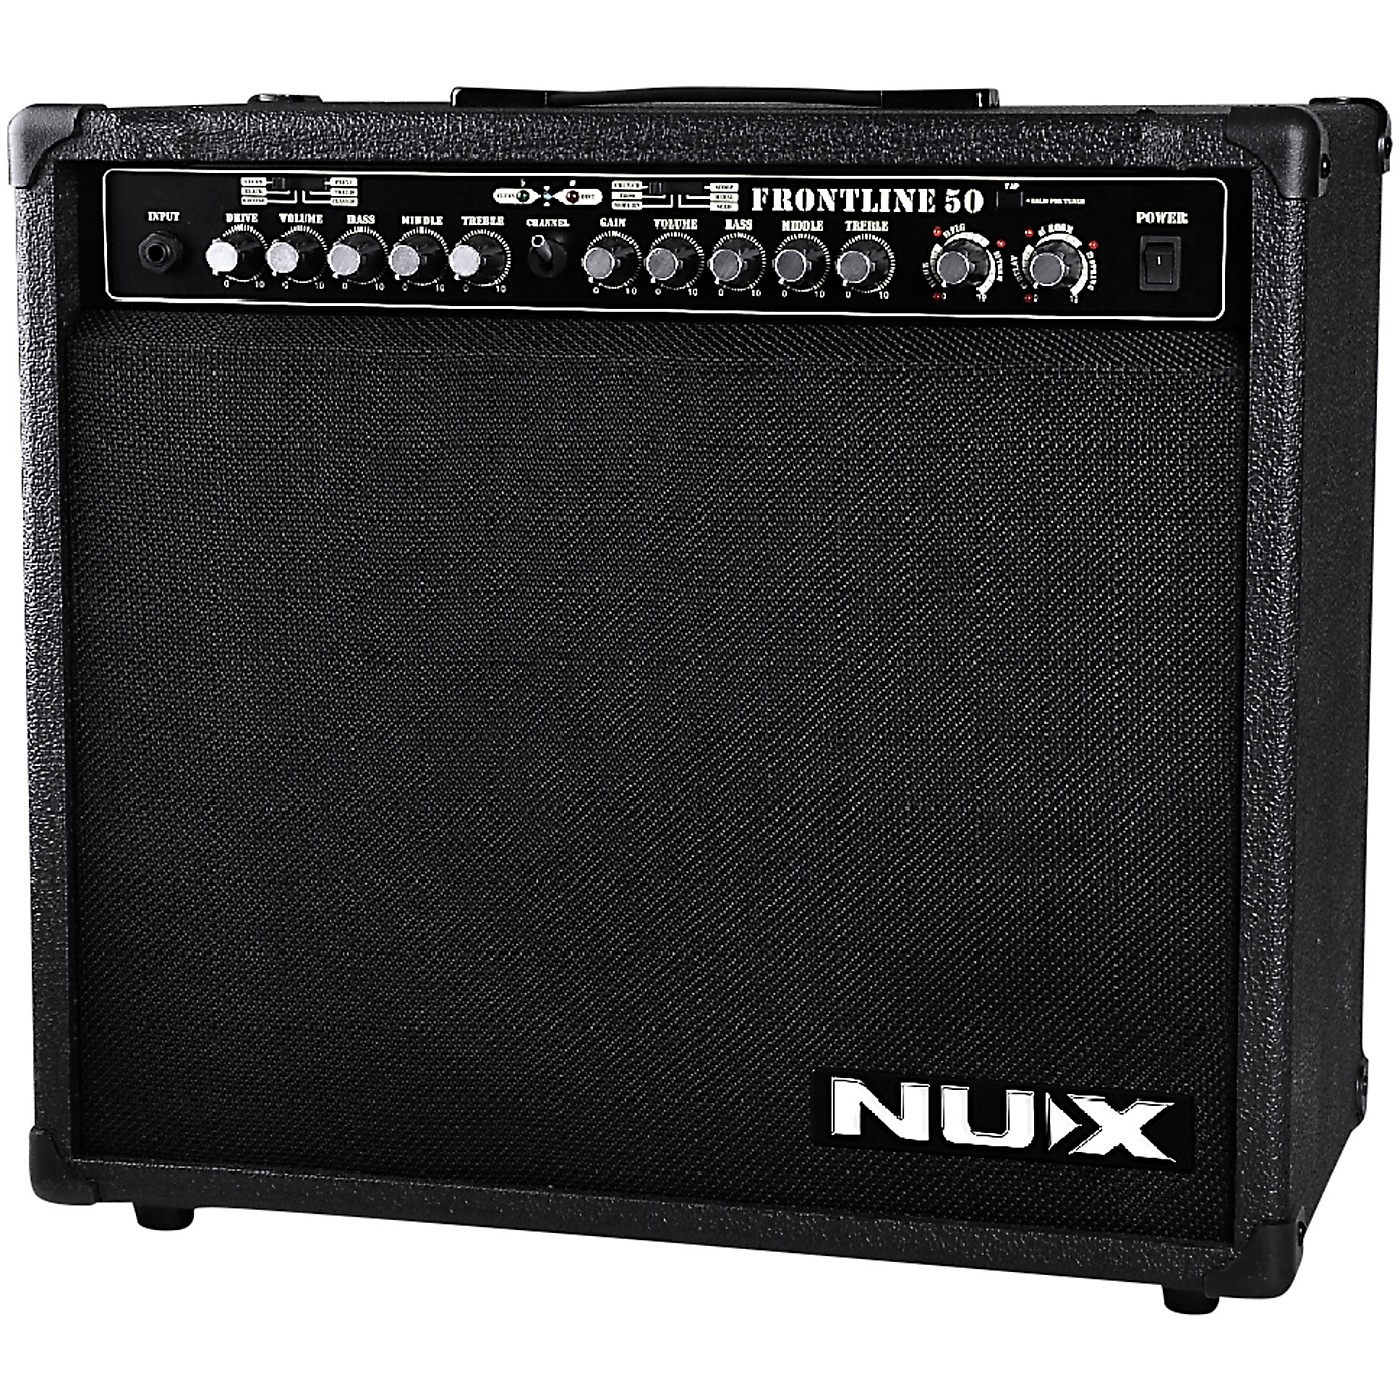 NUX Mighty 50X 50W 1x12 Guitar Combo Amplifier thumbnail